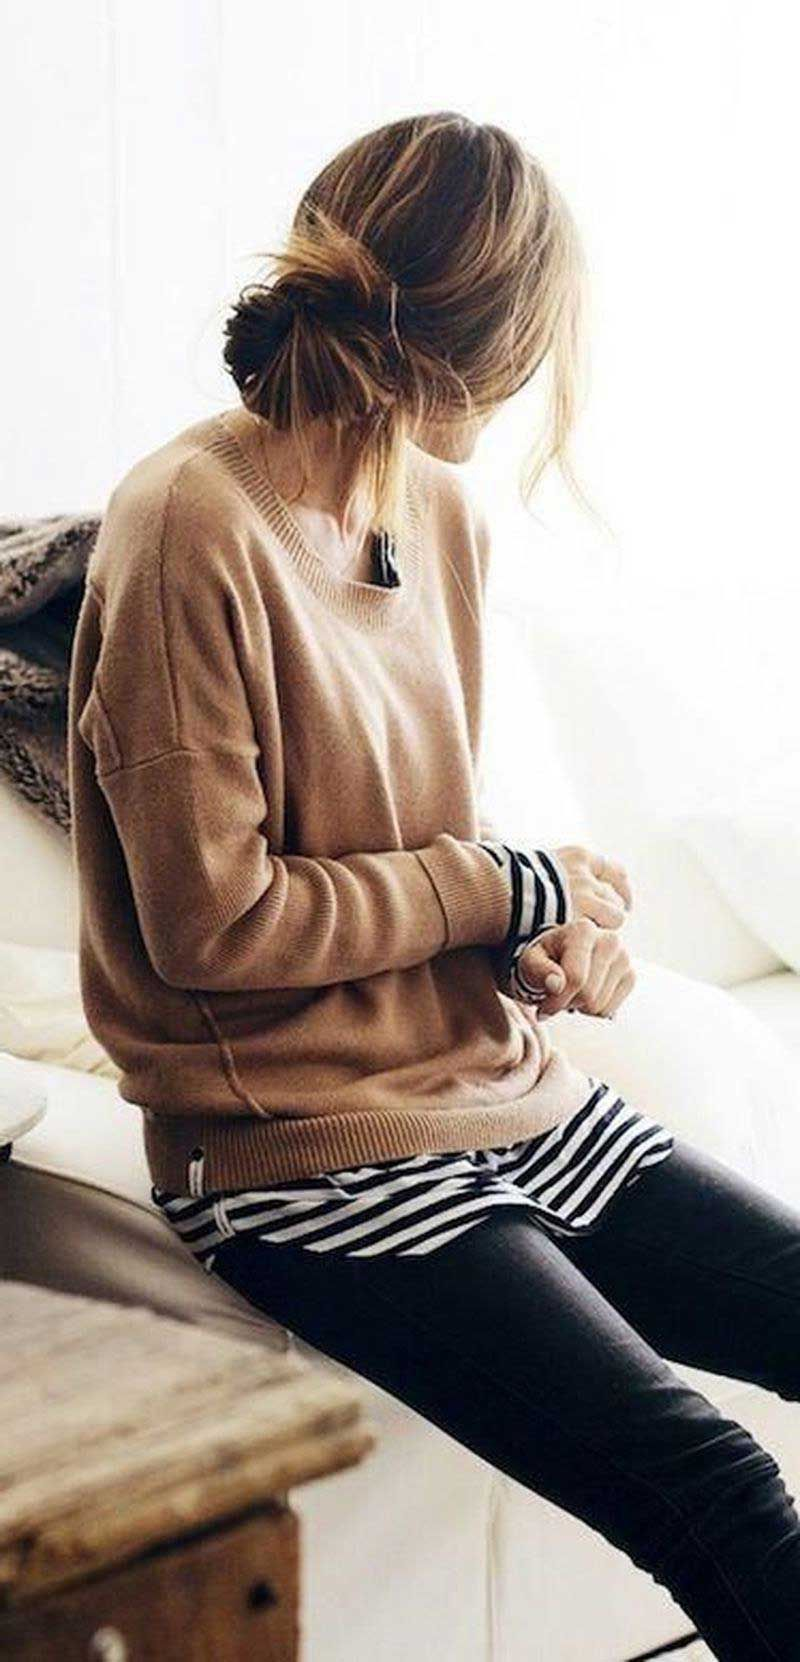 Best Casual Outfits To Change Your Style This Season